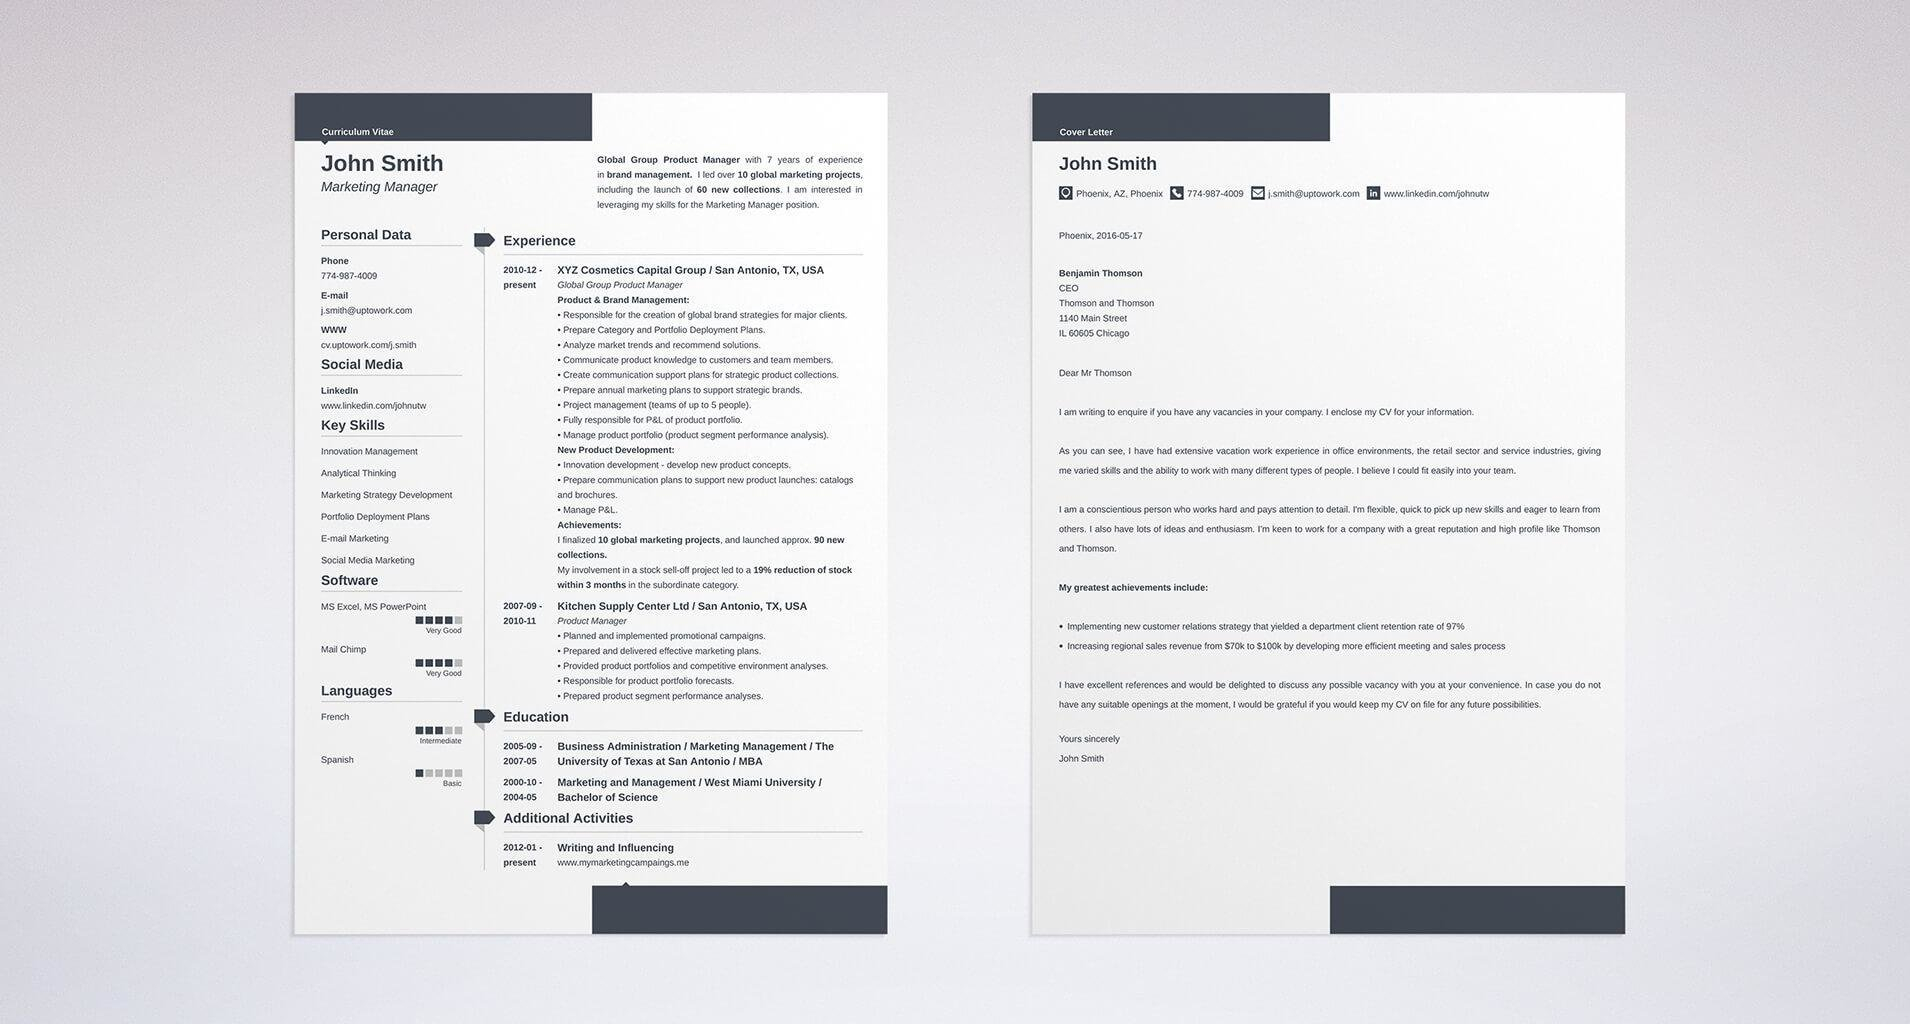 Service Industry Resume Examples - Entry Level Resume Sample and Plete Guide [ 20 Examples]